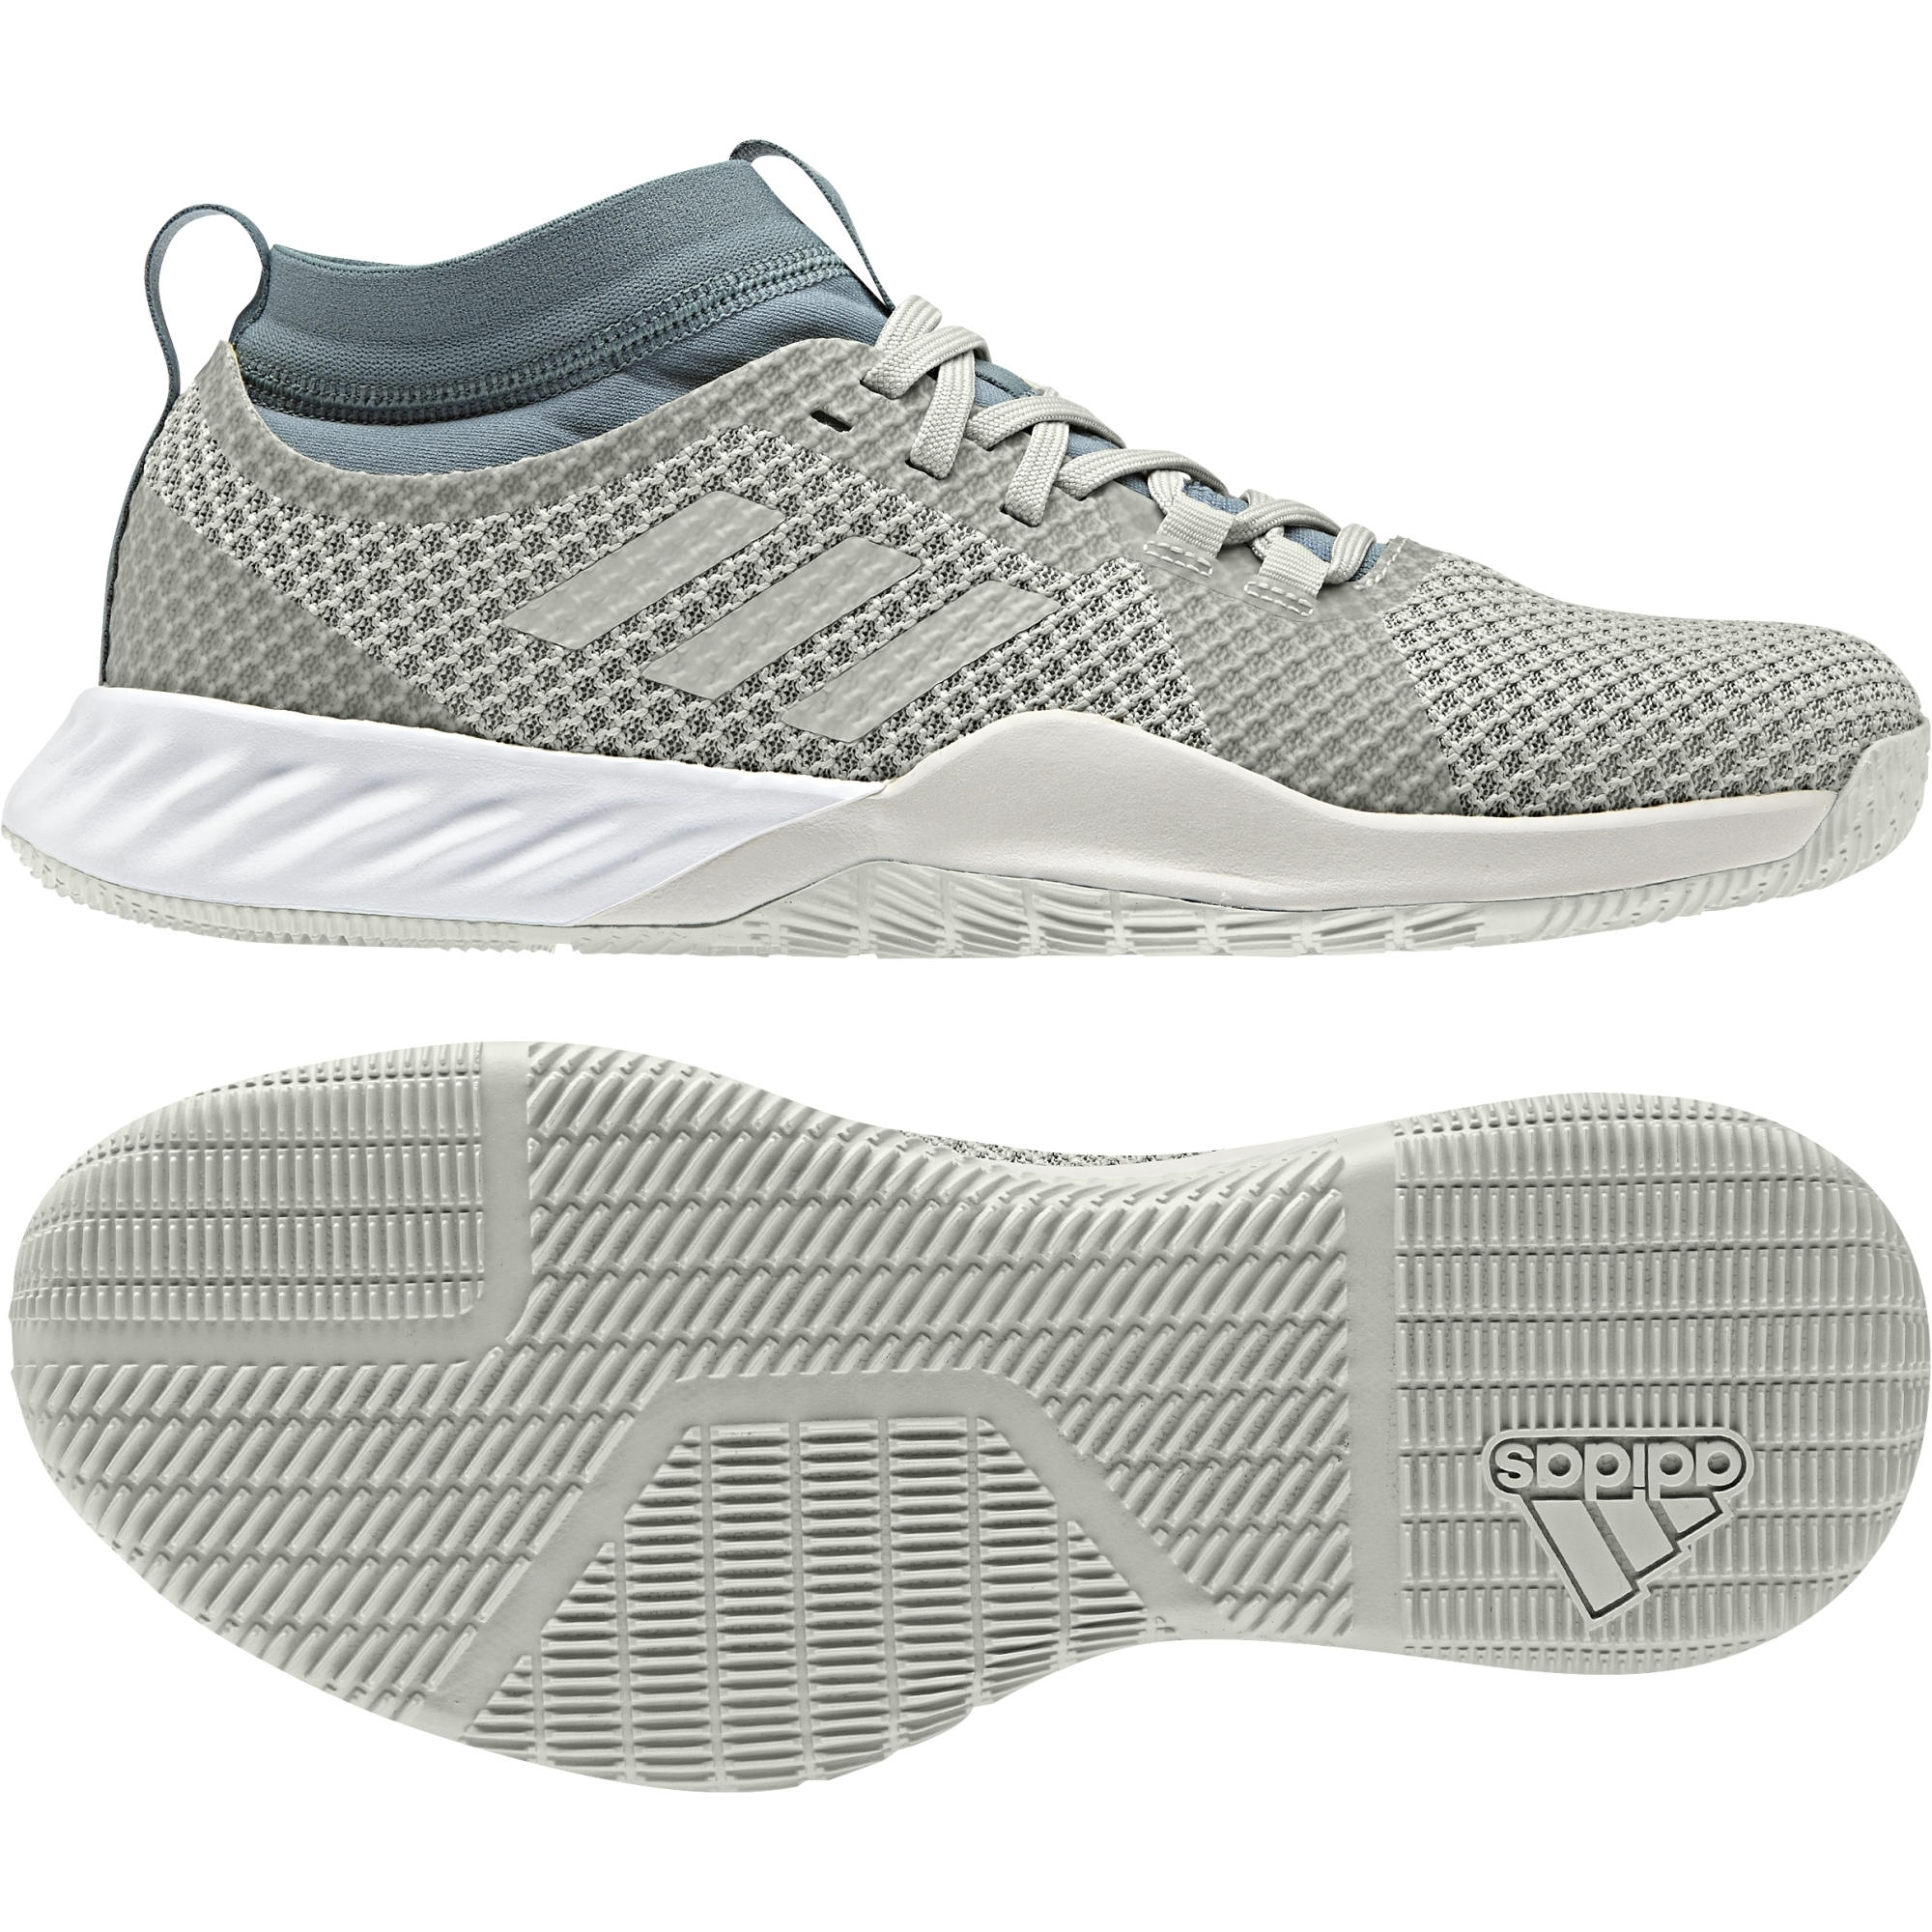 detailed look 34109 62002 Chaussures adidas Crazytrain Pro 3